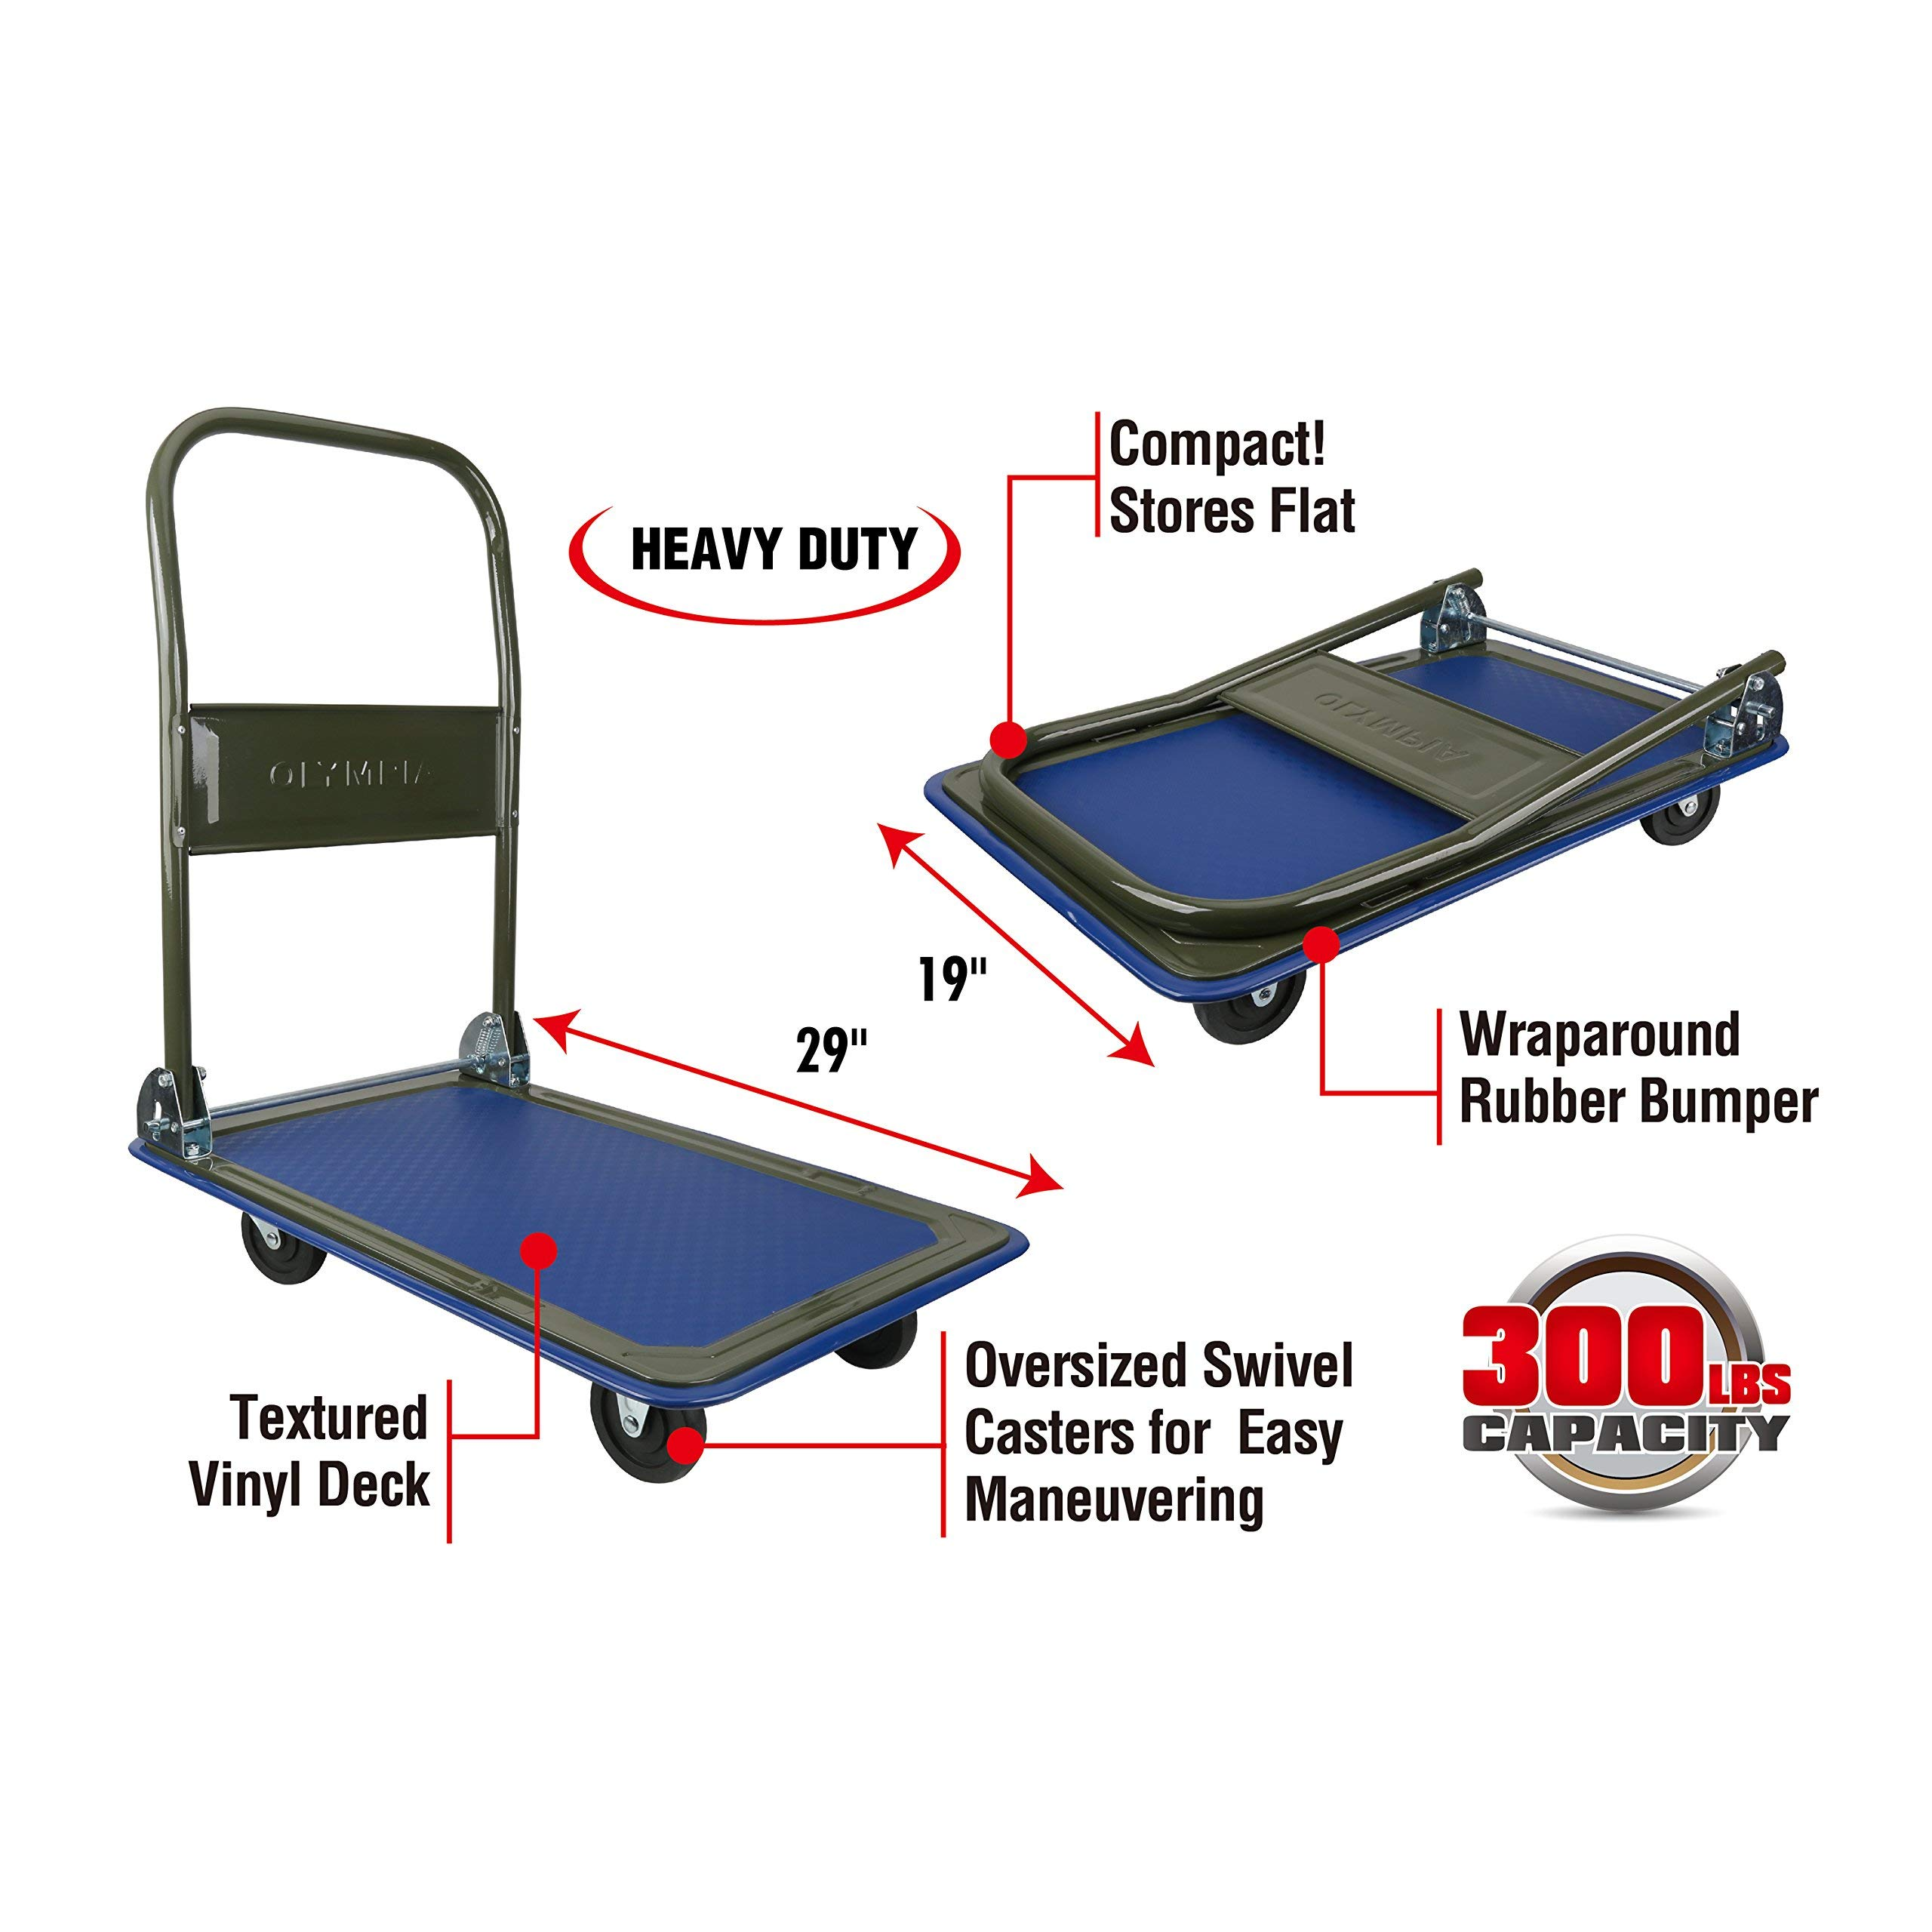 Olympia Tools 85-180 300LB Folding Rolling Flatbed Cart Hand Platform Truck Push Dolly for Loading, Olive Green with Blue Bumper (Renewed)